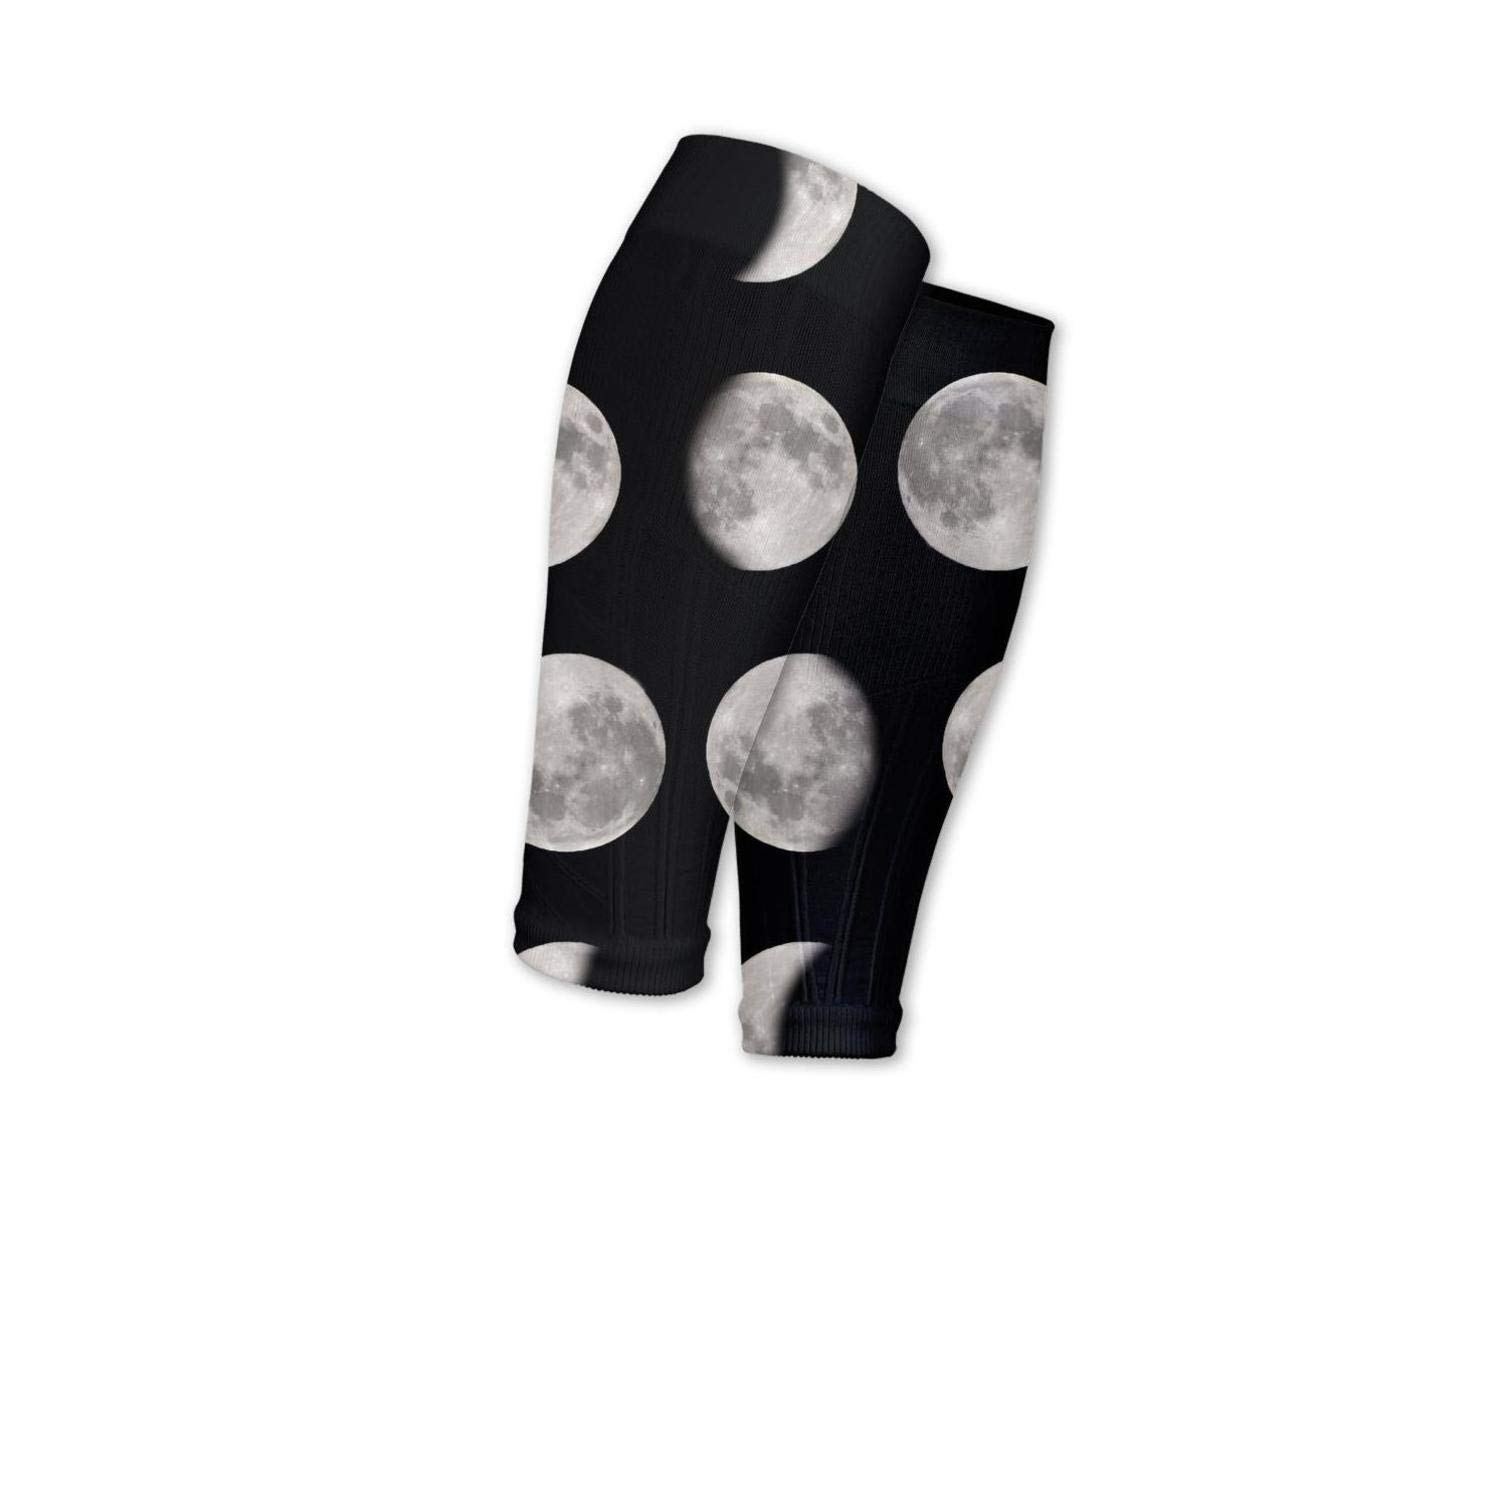 Smilelolly Moon Phase Calf Compression Sleeves Helps Calf Guard Leg Sleeves for Men Women